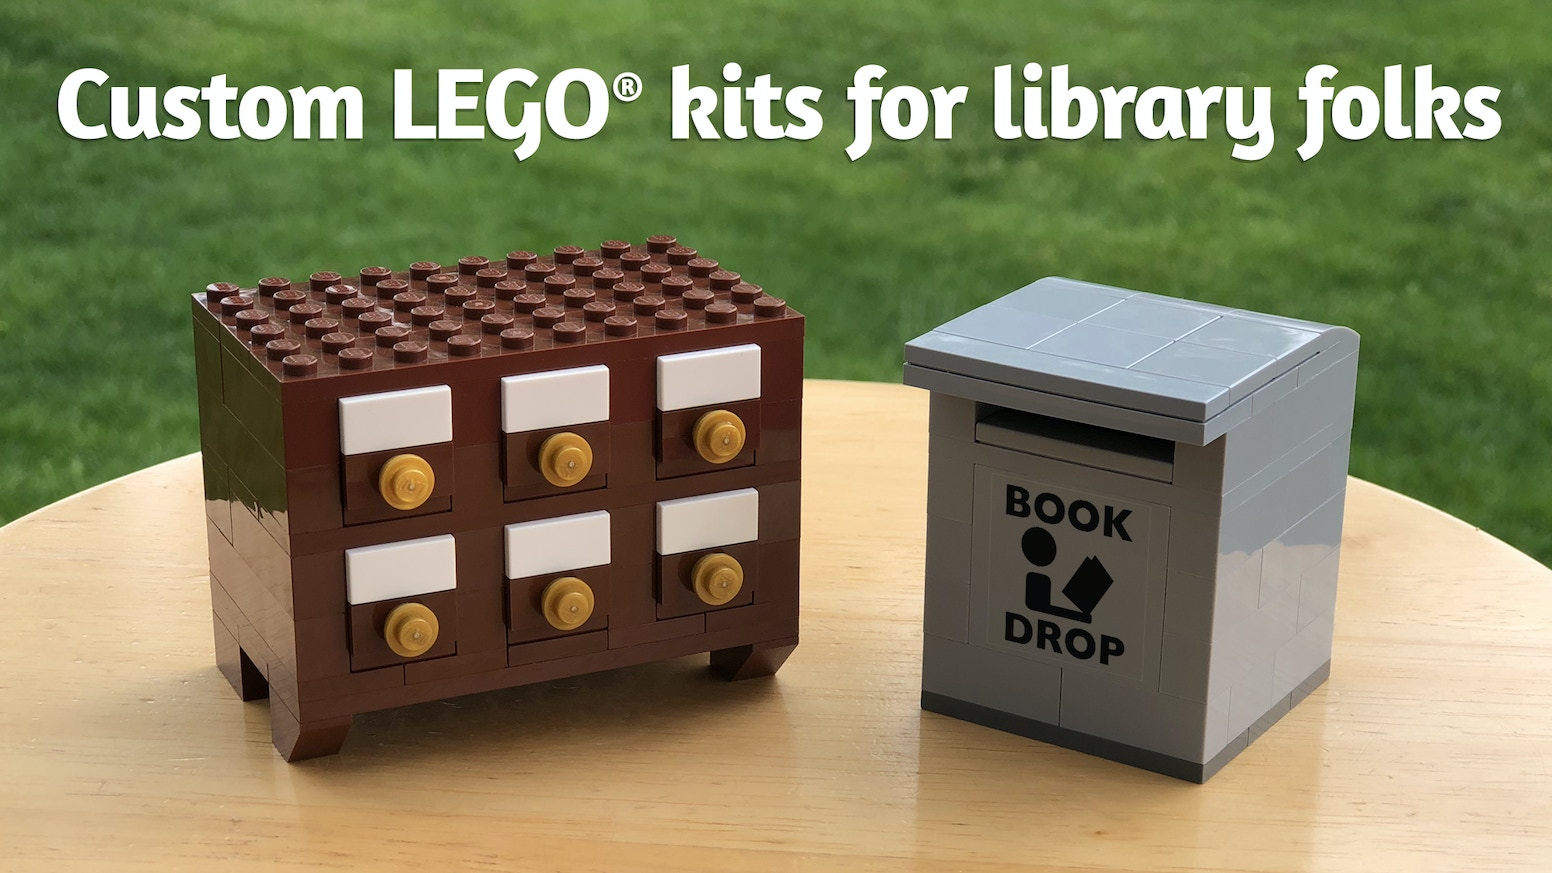 Custom card catalog and book drop kits made out of genuine LEGO® elements.